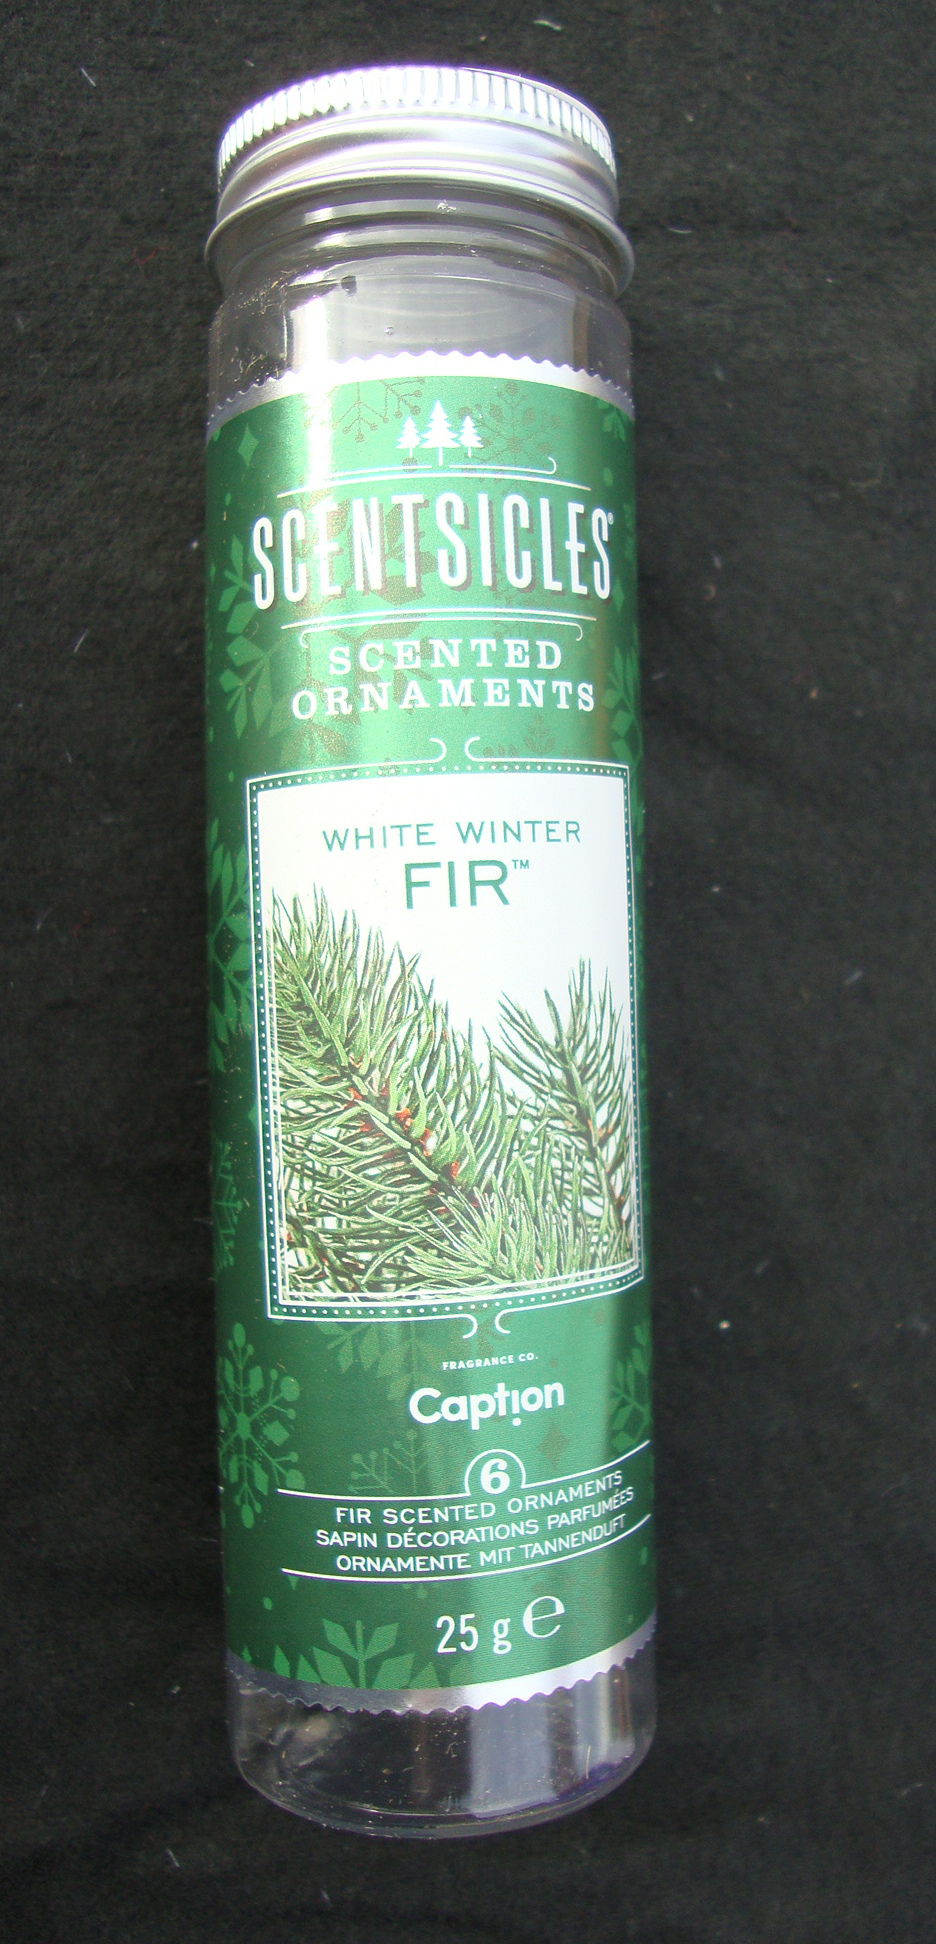 6 x scentsicles scented hanging sticks white winter fir christmas tree scent